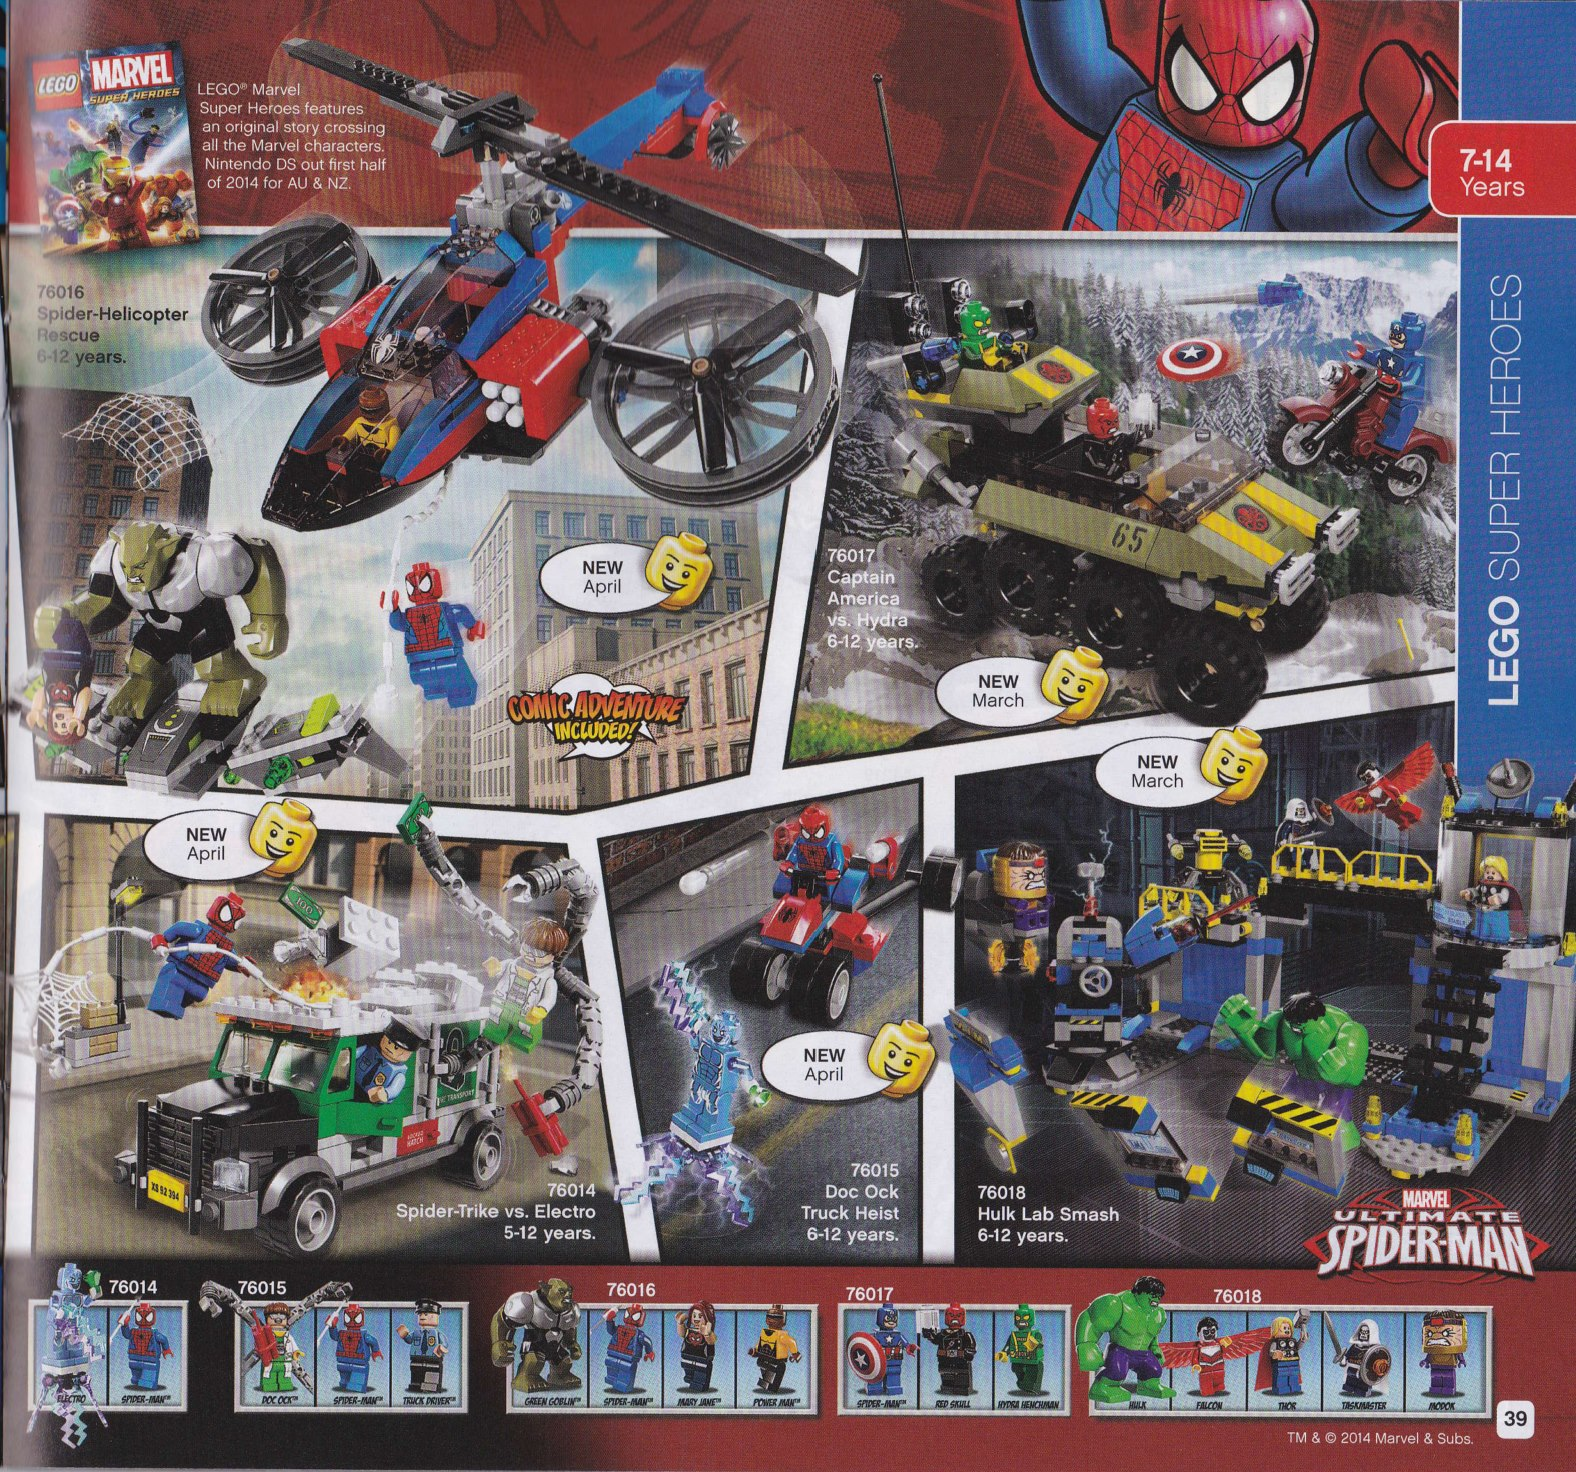 LEGO Marvel 2014 Sets List & Photos - 722.1KB